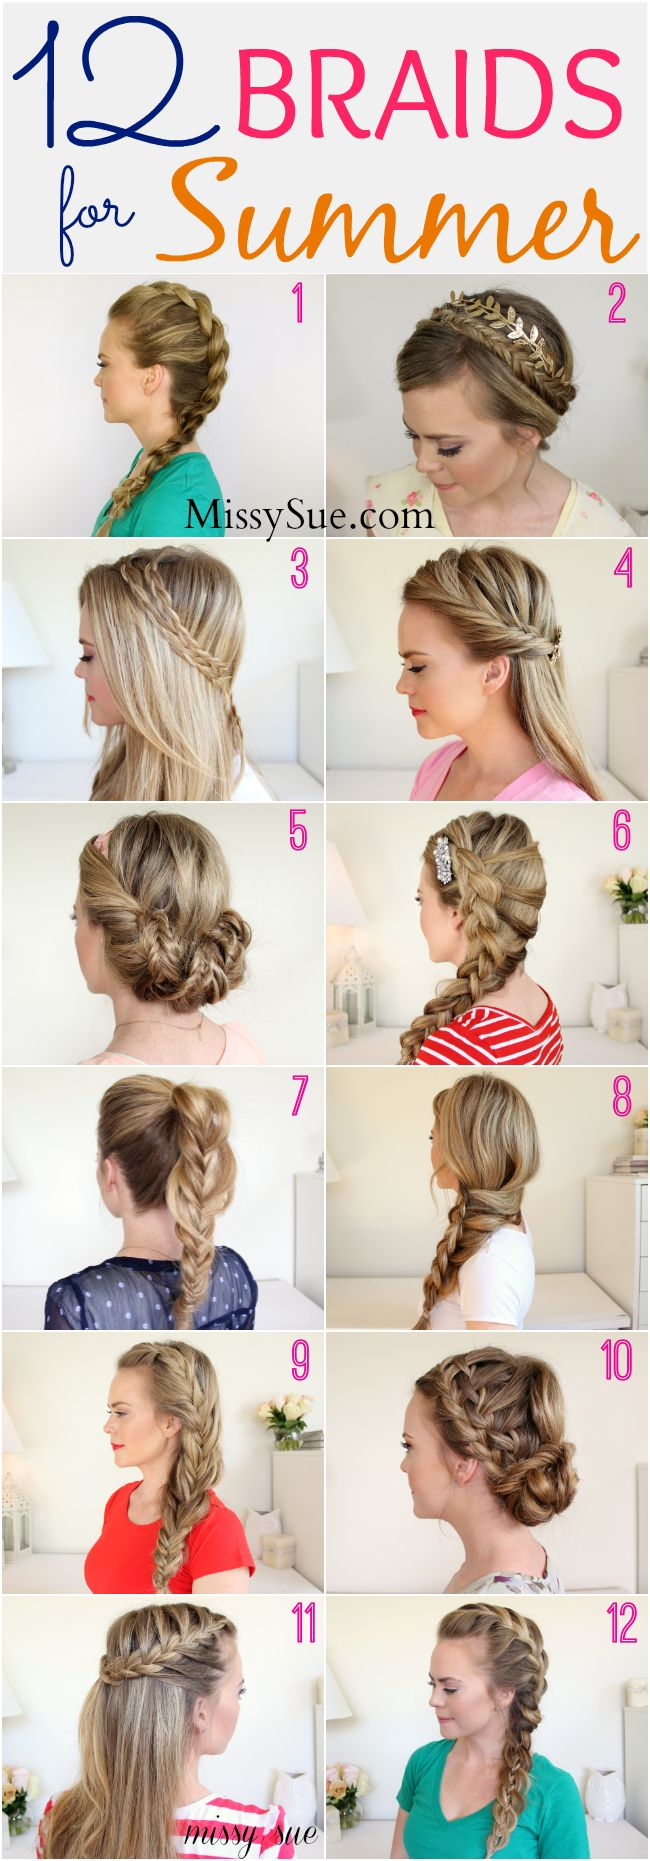 12 Braids for Summer -- beat the heat  and look cute with these braided hairstyles:: Summer Hairstyles